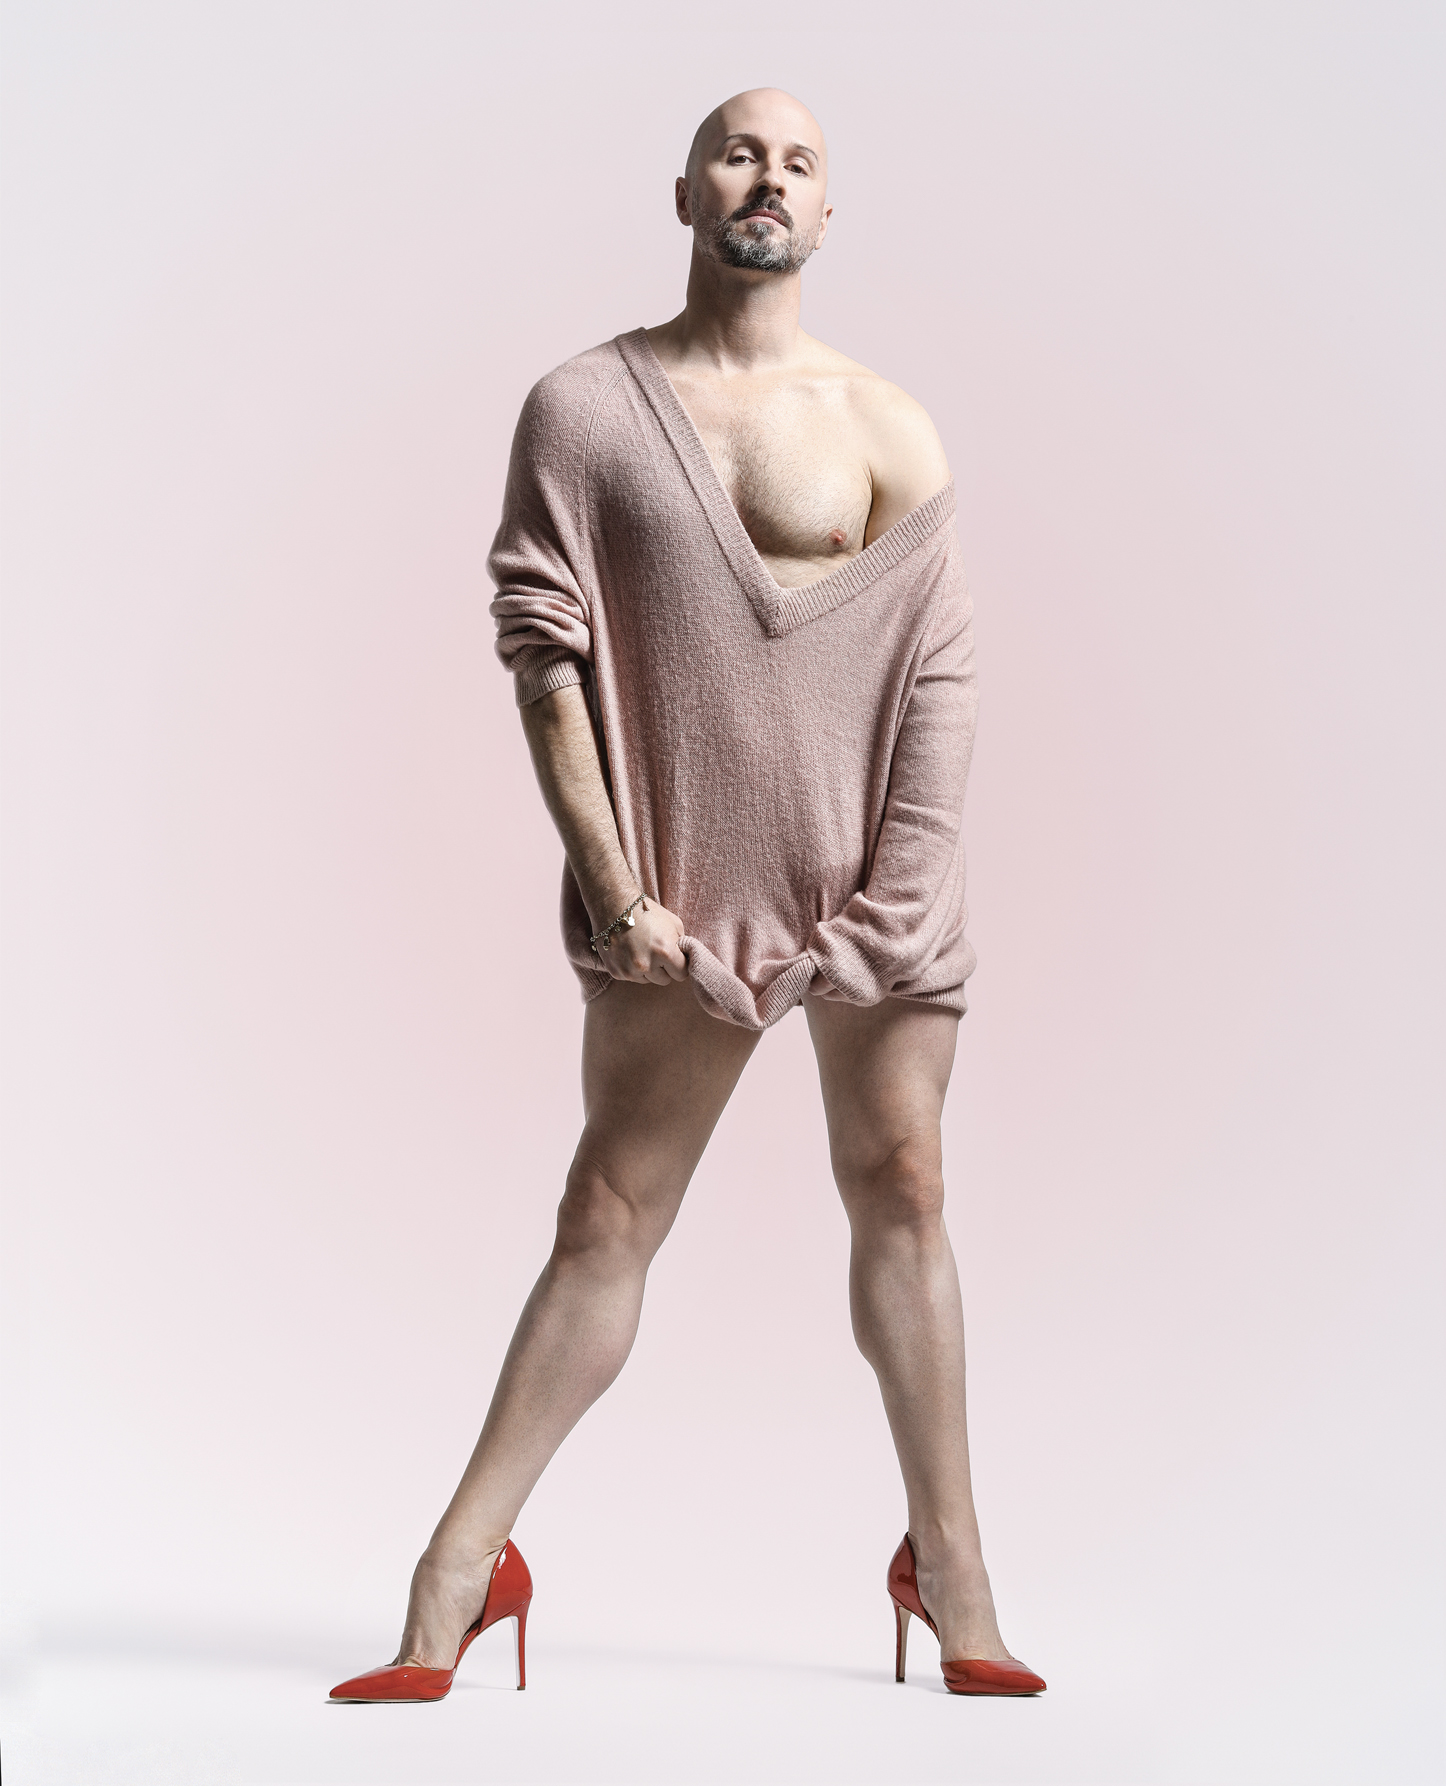 Robert Curran in a sweater and red high heels.